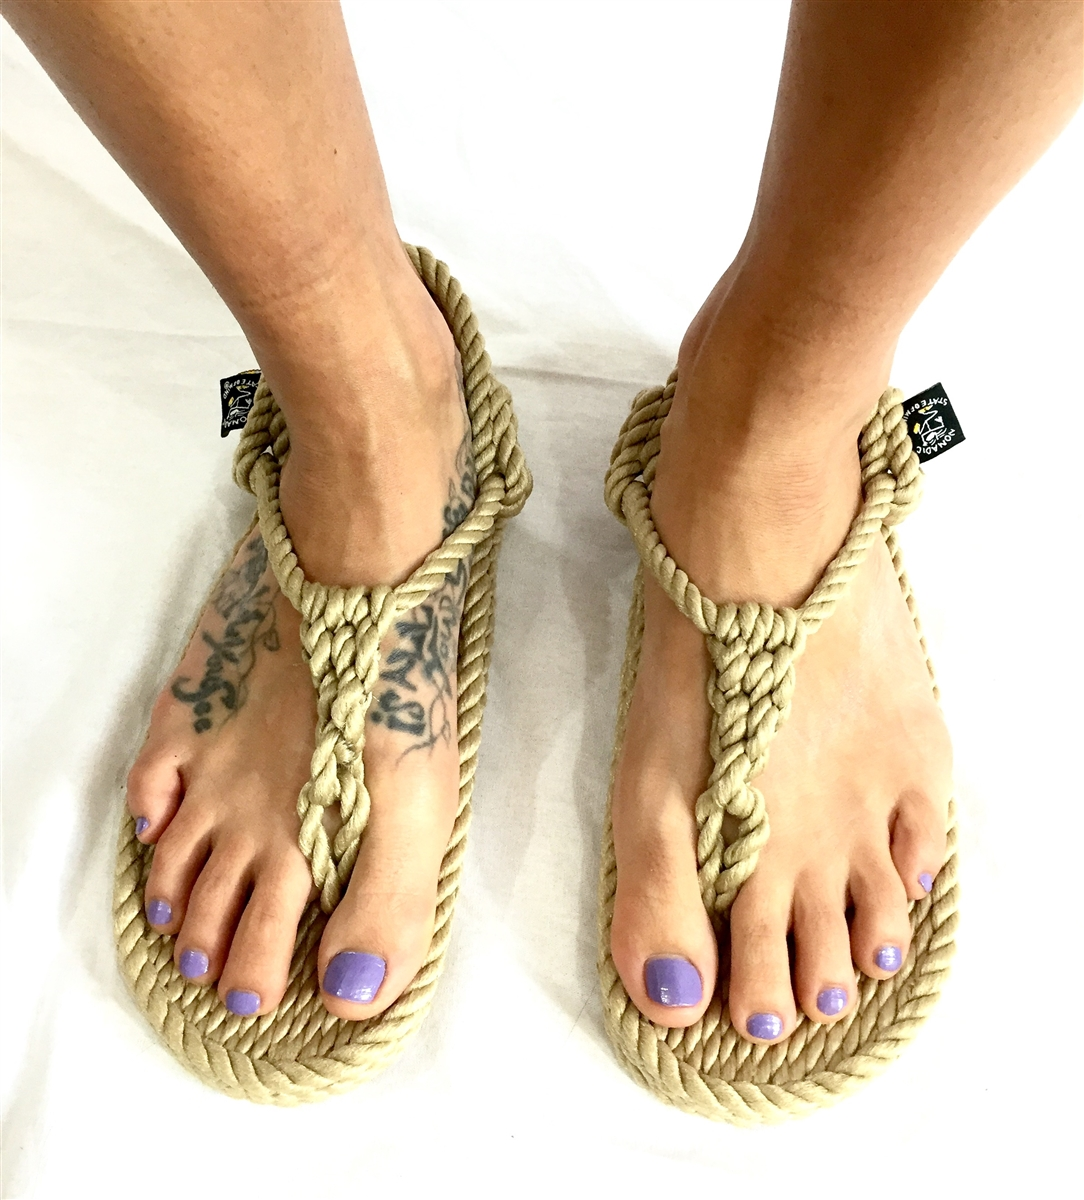 81622f2b381e0c Rope sandals crafty sandals jpg 1084x1200 His rope sandals